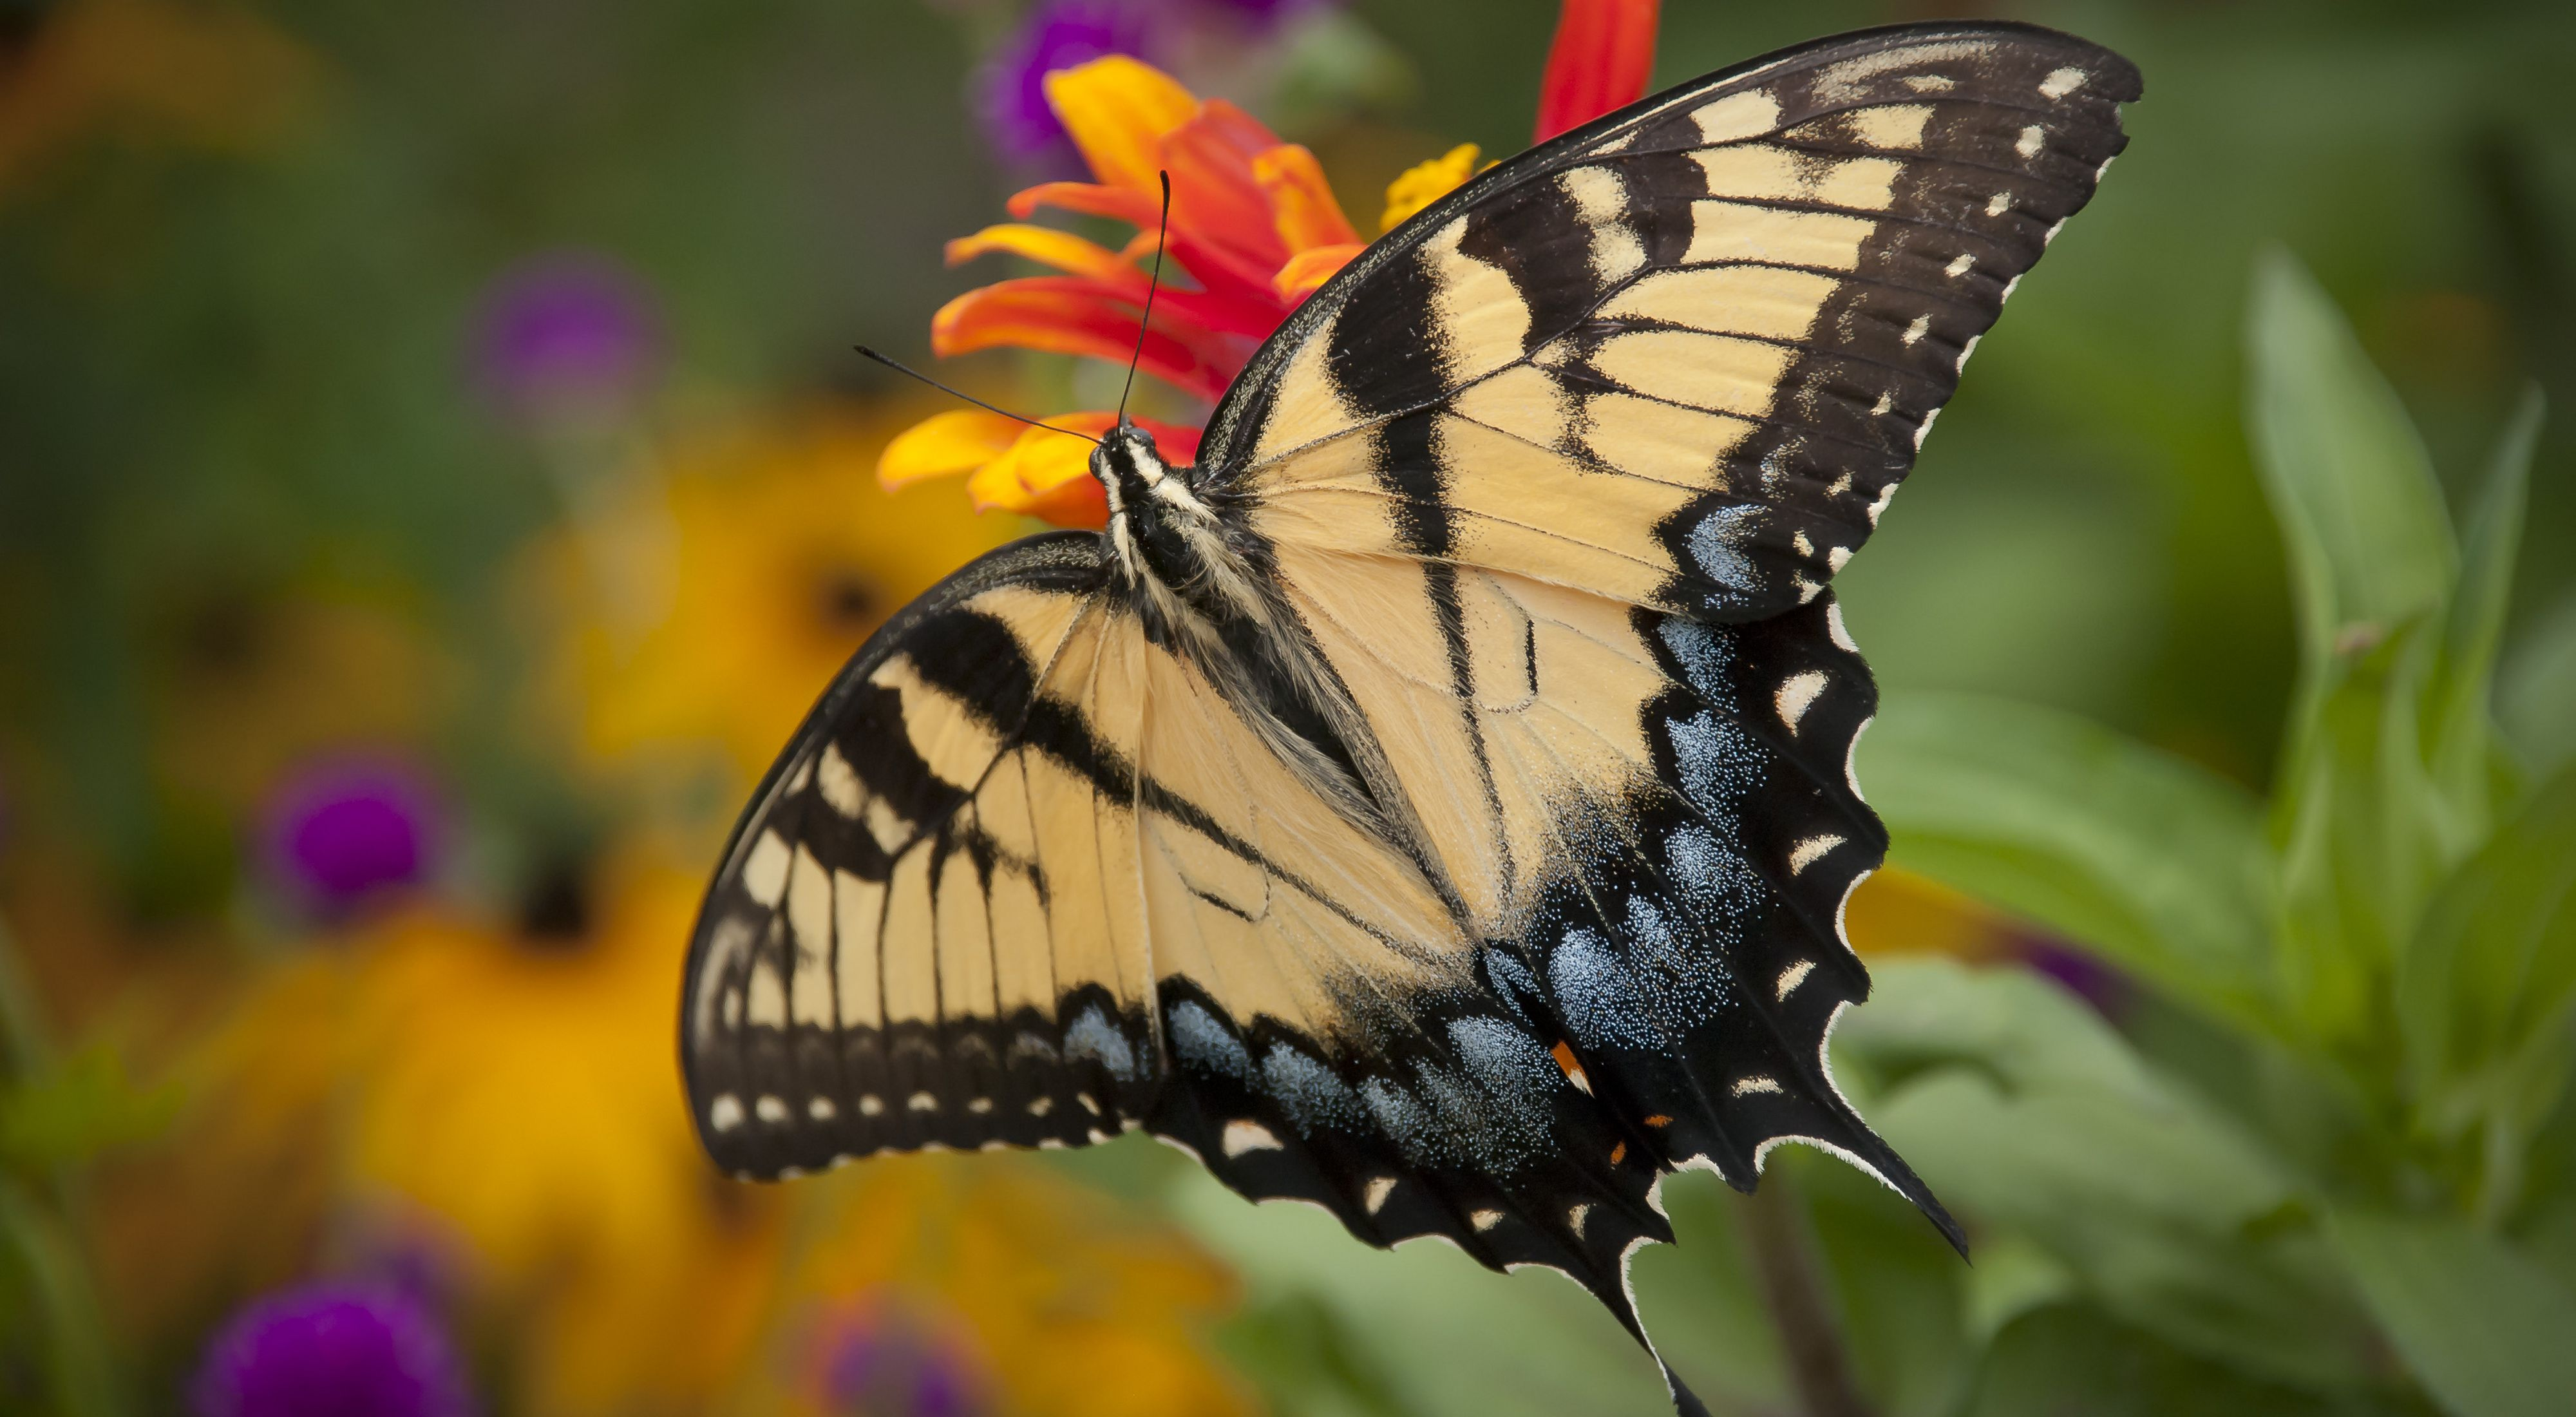 A butterfly with black and indigo tipped yellow wings sips nectar from a yellow and orange flower. Green leaves and yellow and purple blossoms are in the background.